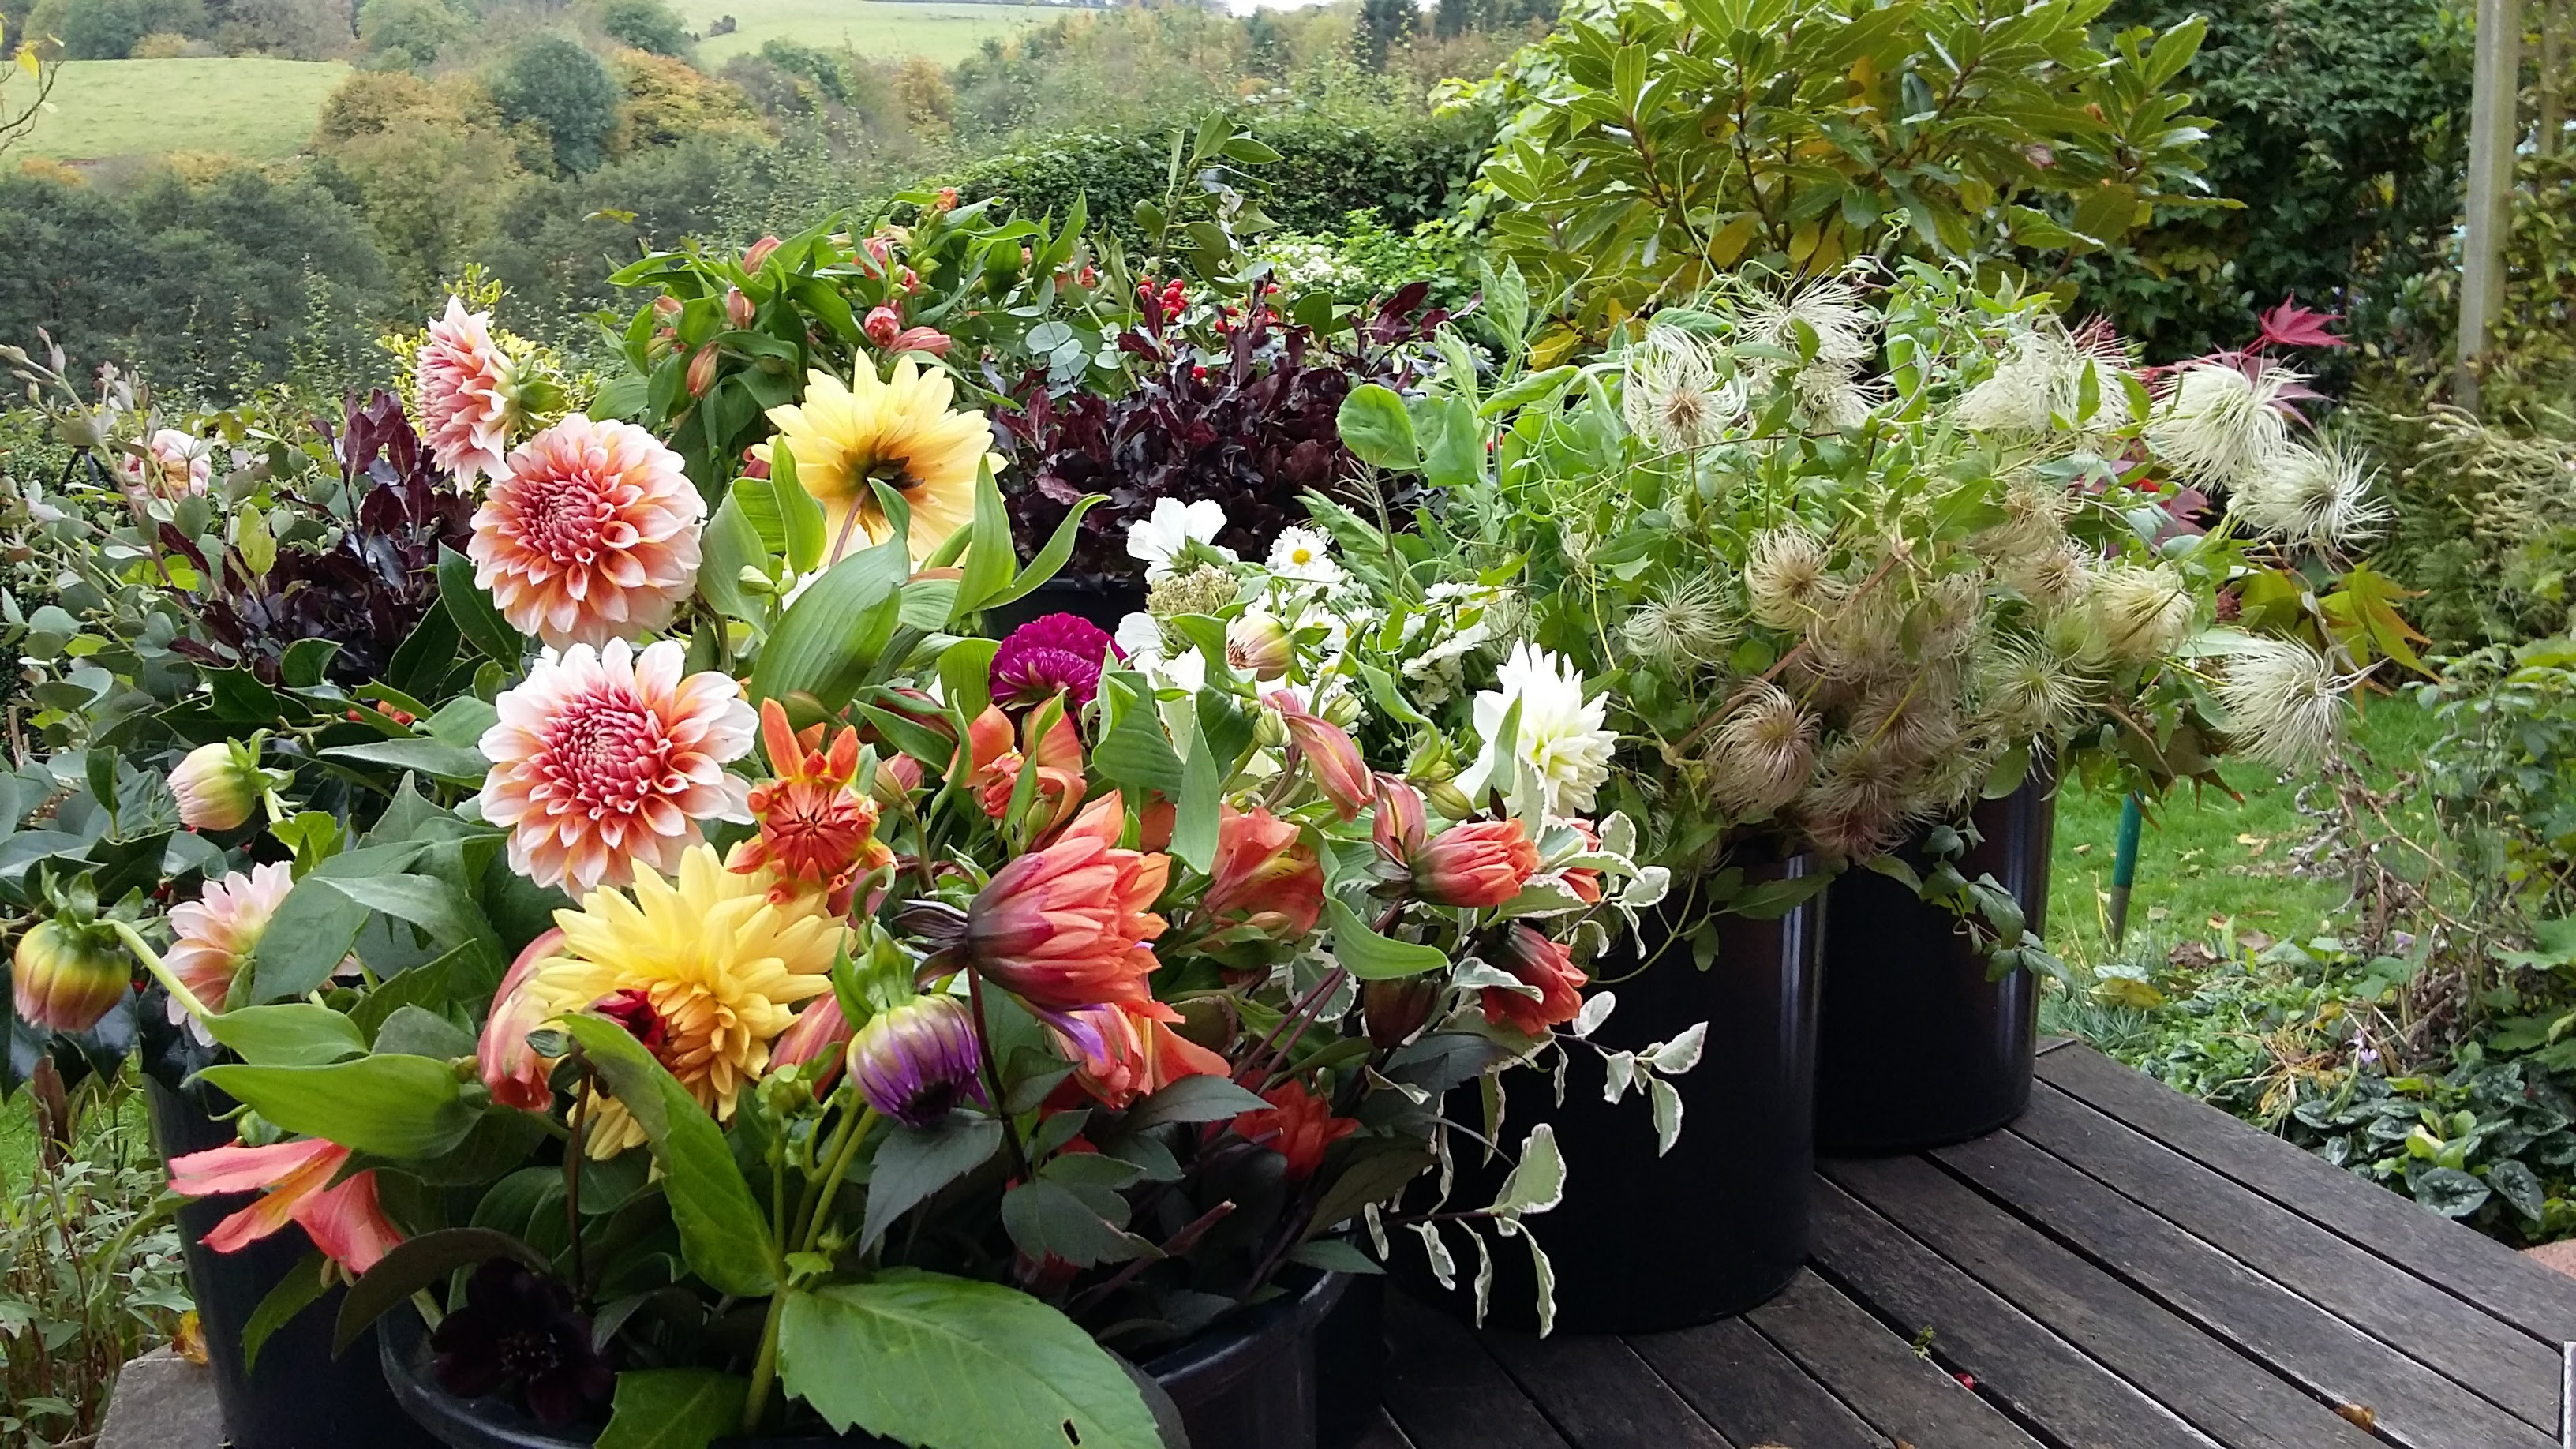 Locally grown flowers for a wedding bouquet from Somerset Cut Flower Garden